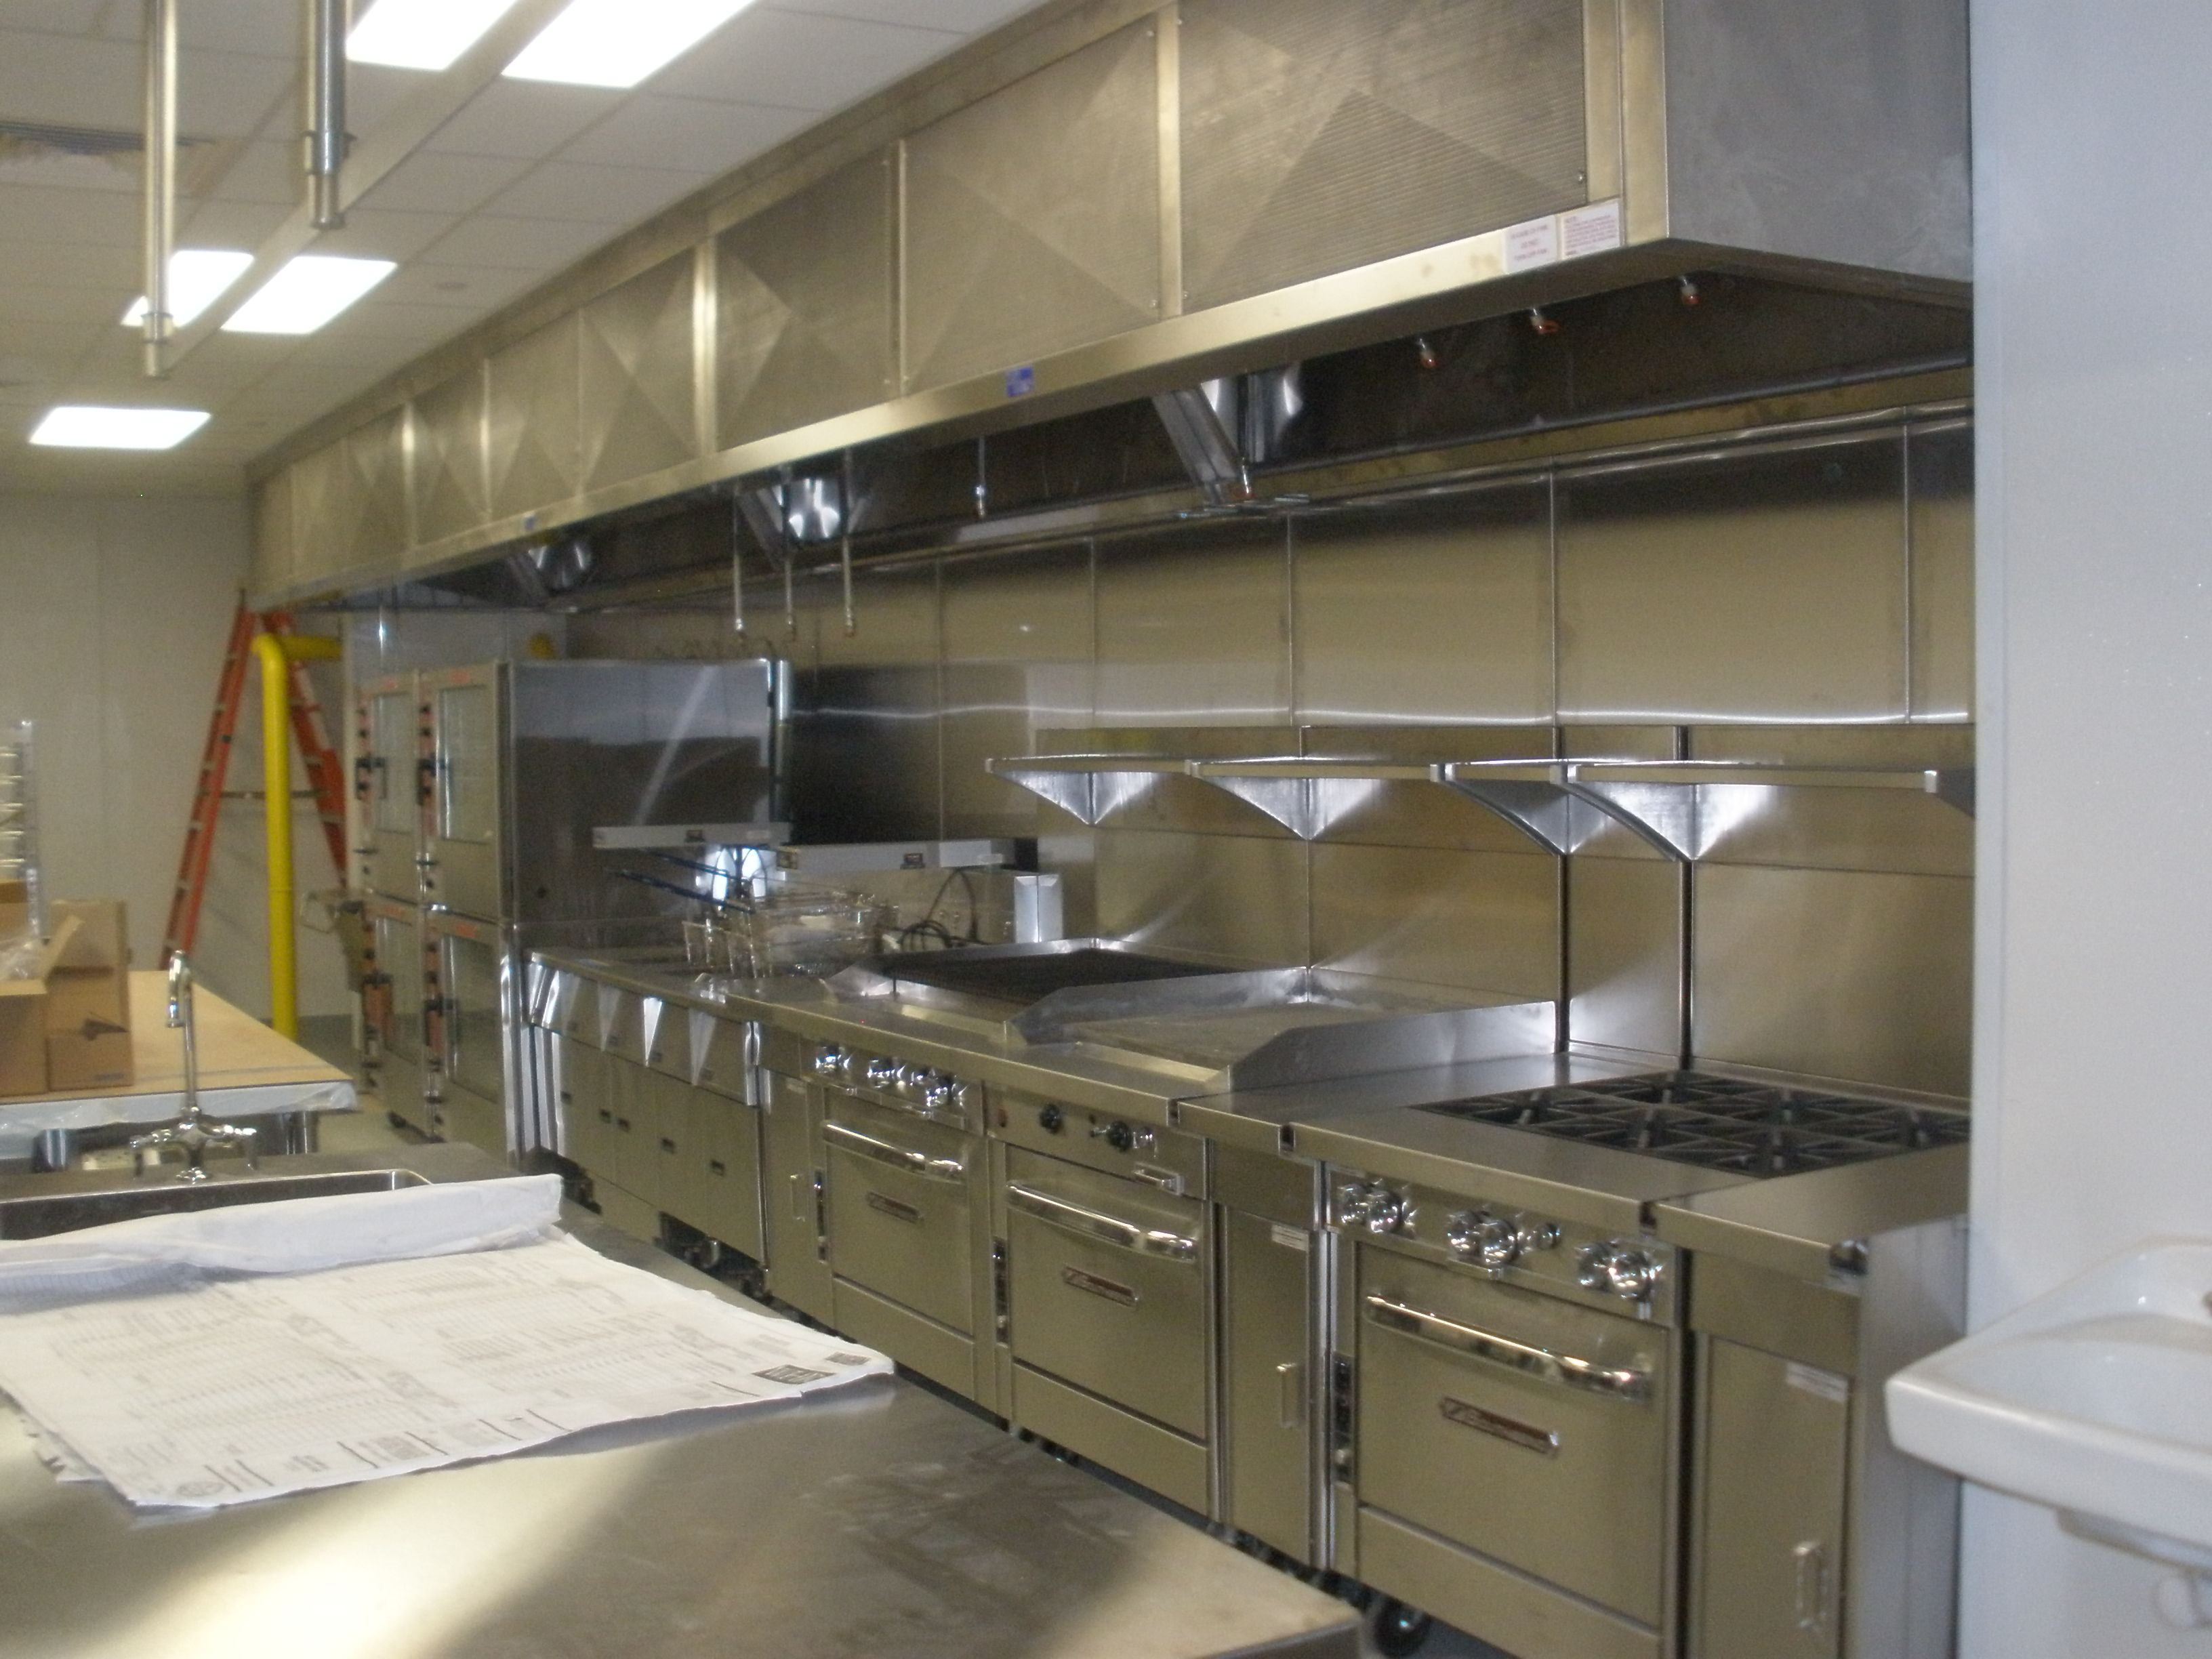 Kitchen Design Houston New Small Restaurant Kitchen Design With Stainless Steel Commercial Design Ideas